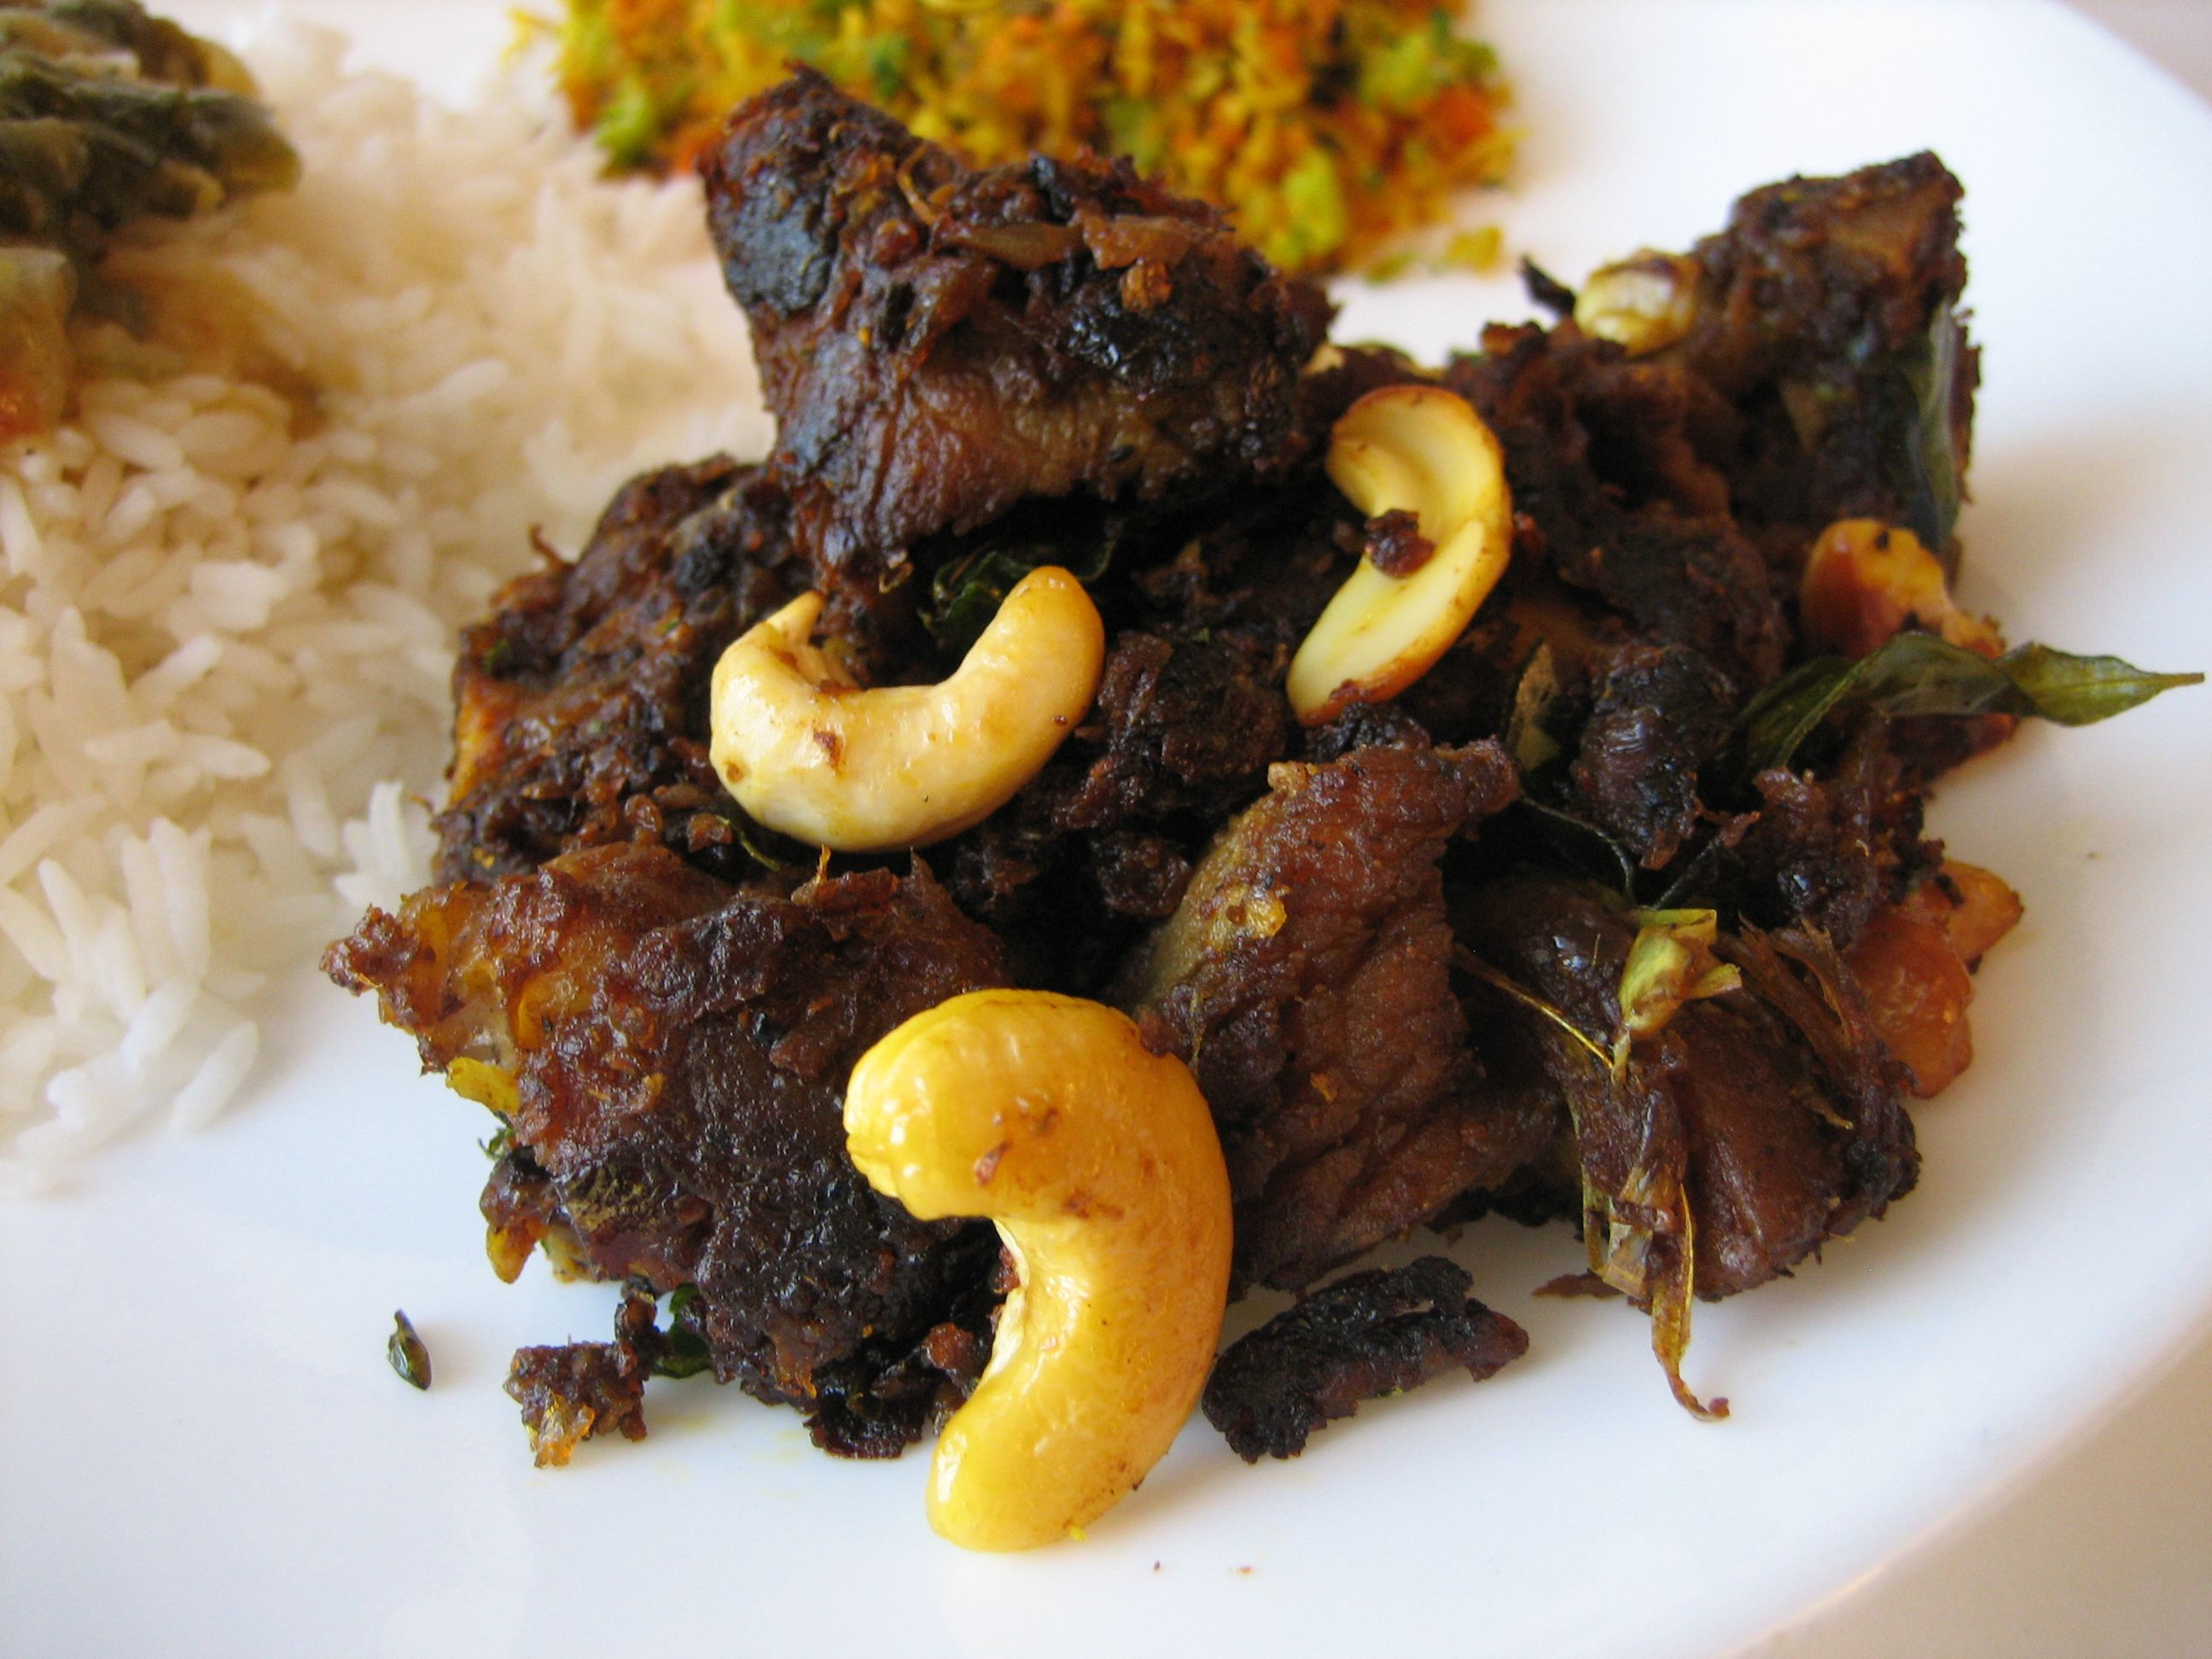 Goat liver with dill leaves indian kitchen cooking recipes - Food